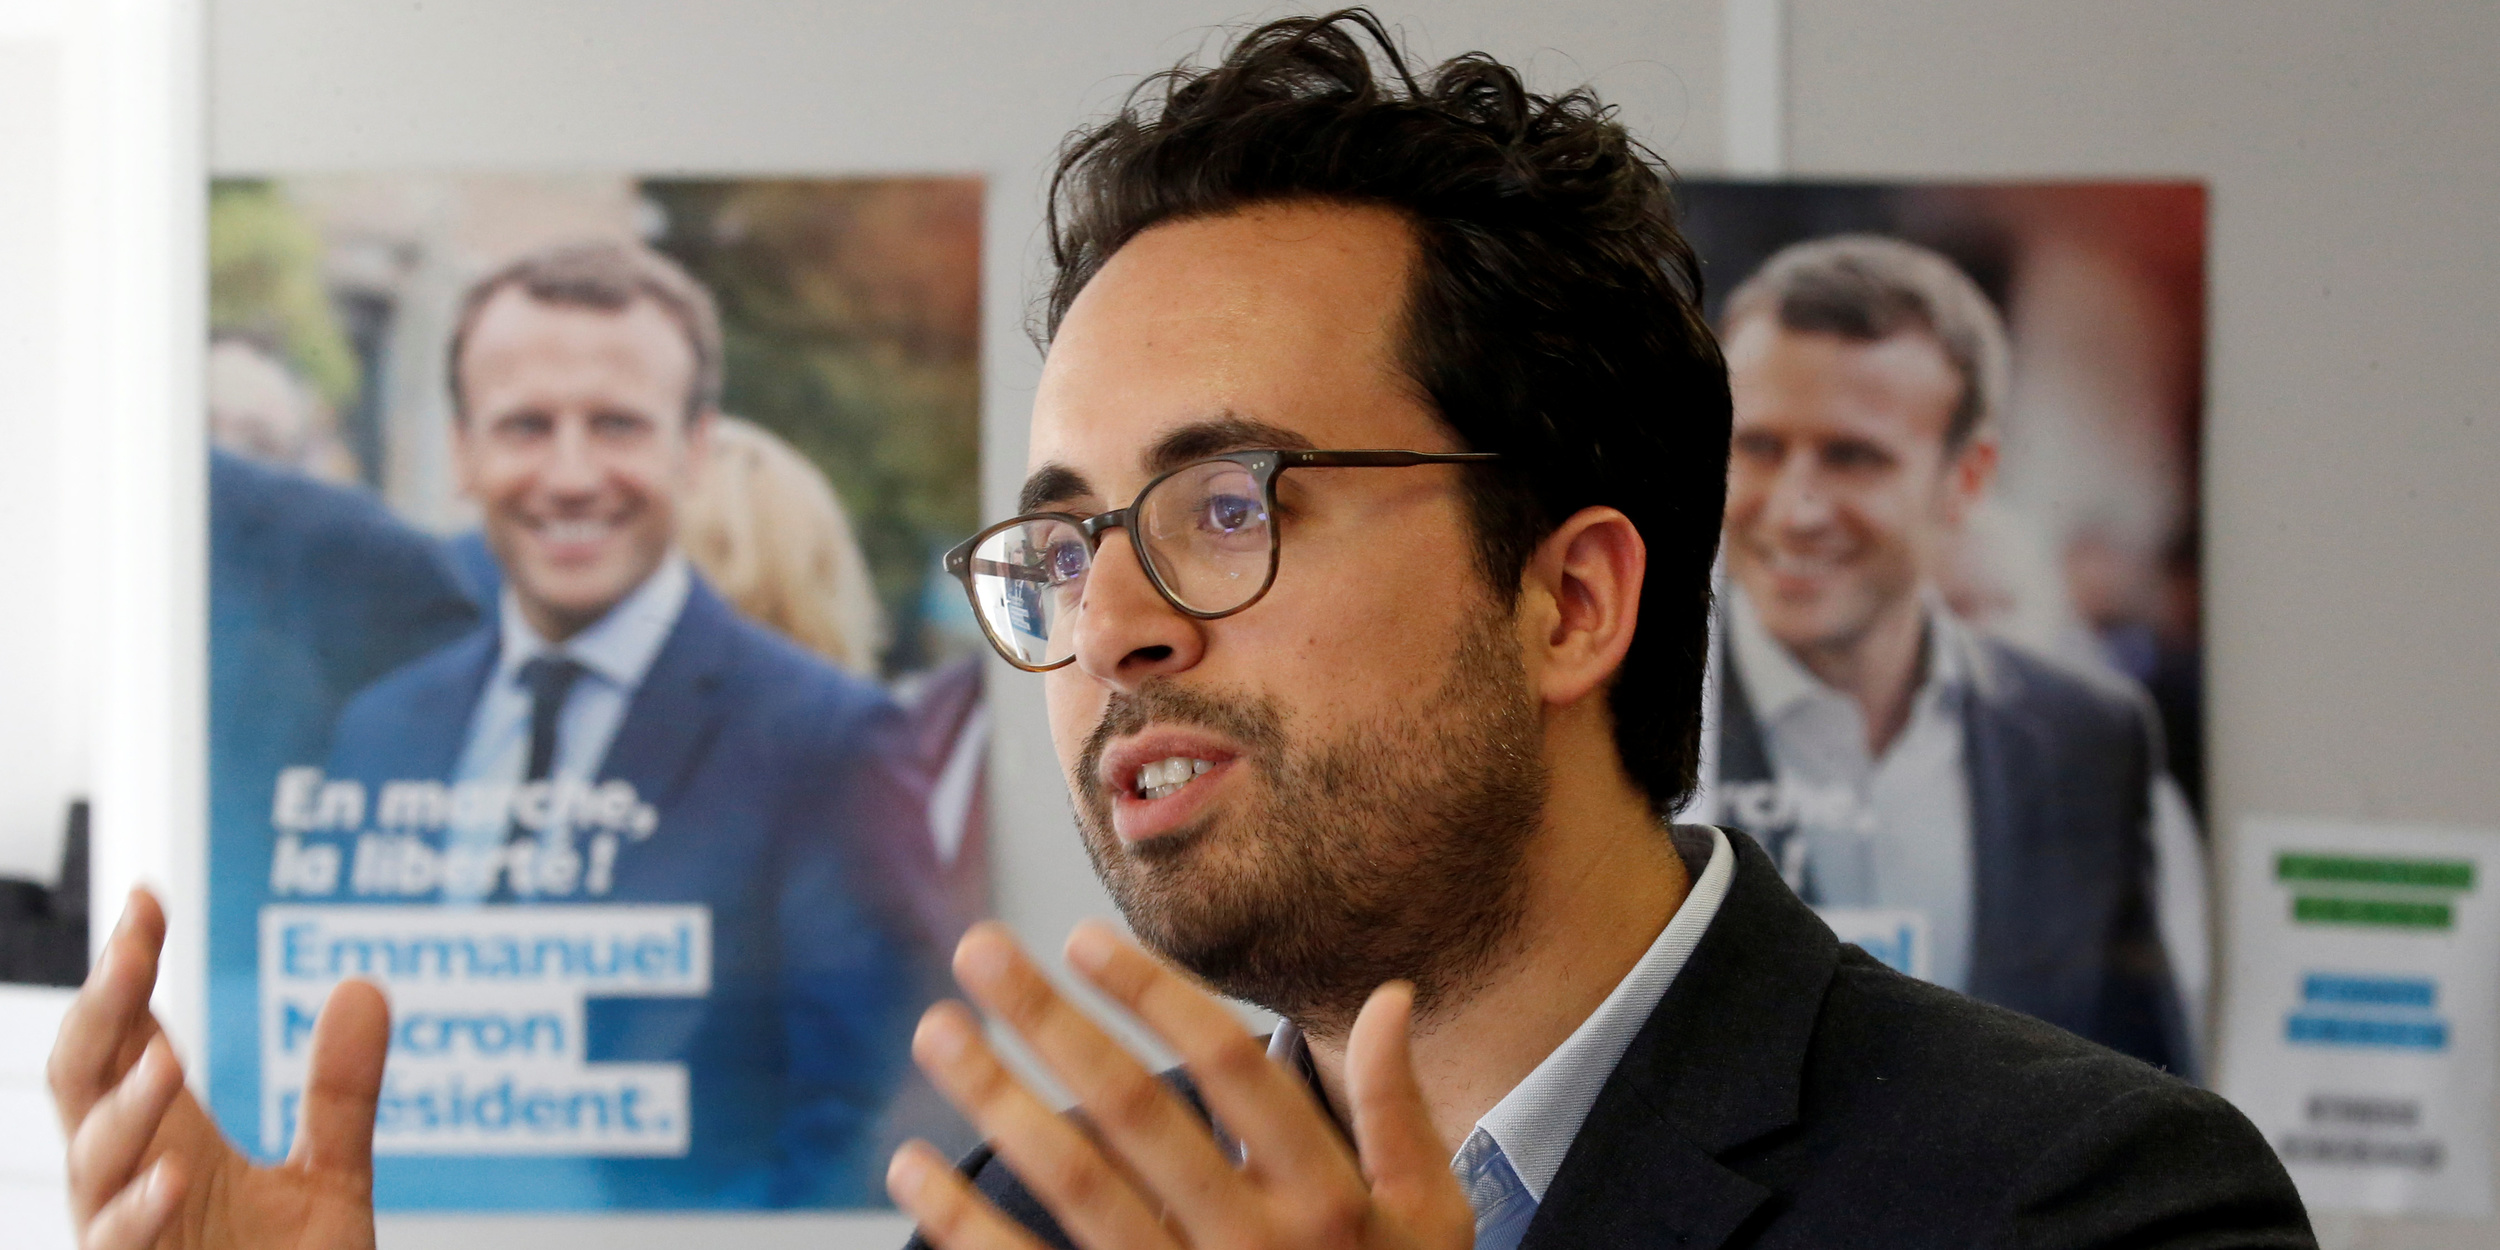 France's New President Picks a Millennial Entrepreneur to Be Country's Digital Minister